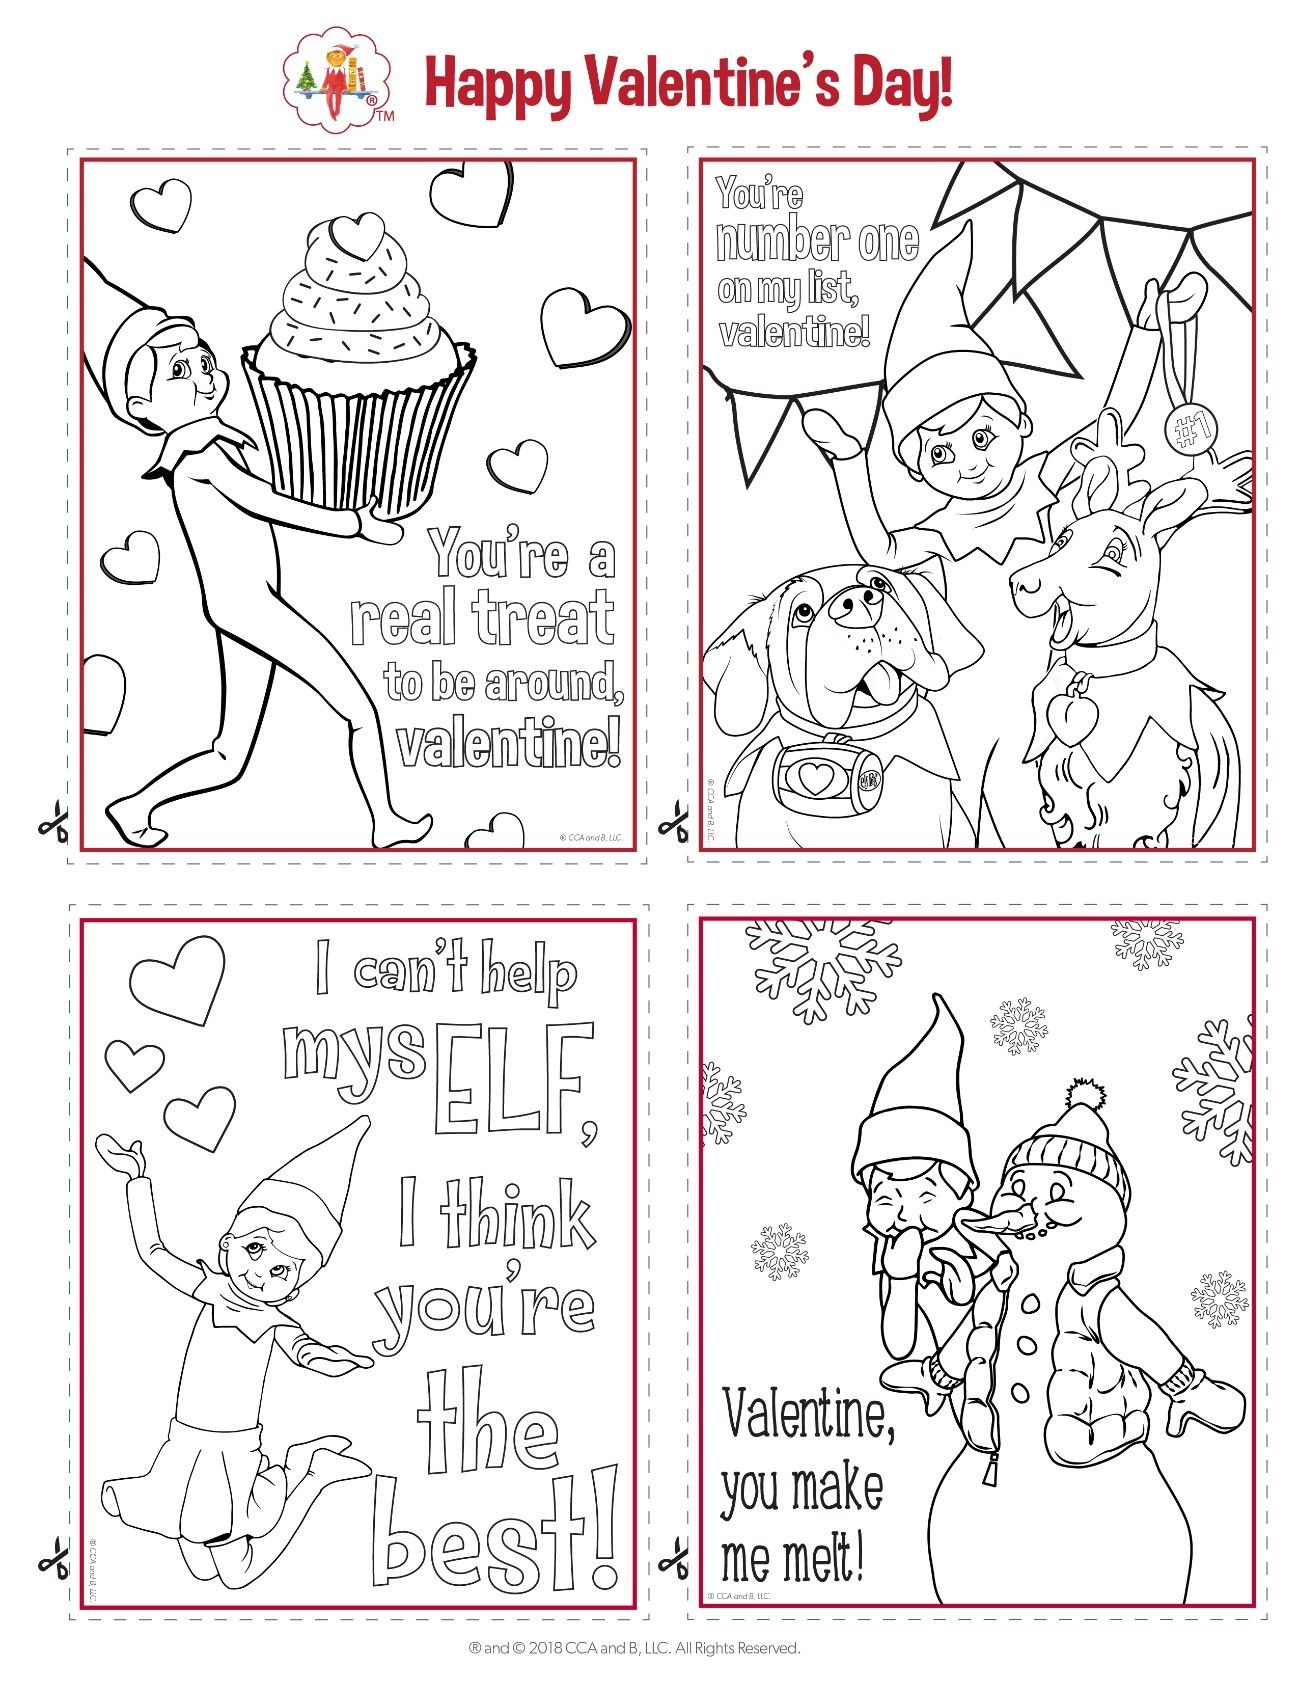 The Elf On The Shelf A Christmas Tradition Valentine Coloring Pages Printable Valentines Day Cards Valentines Printables Free